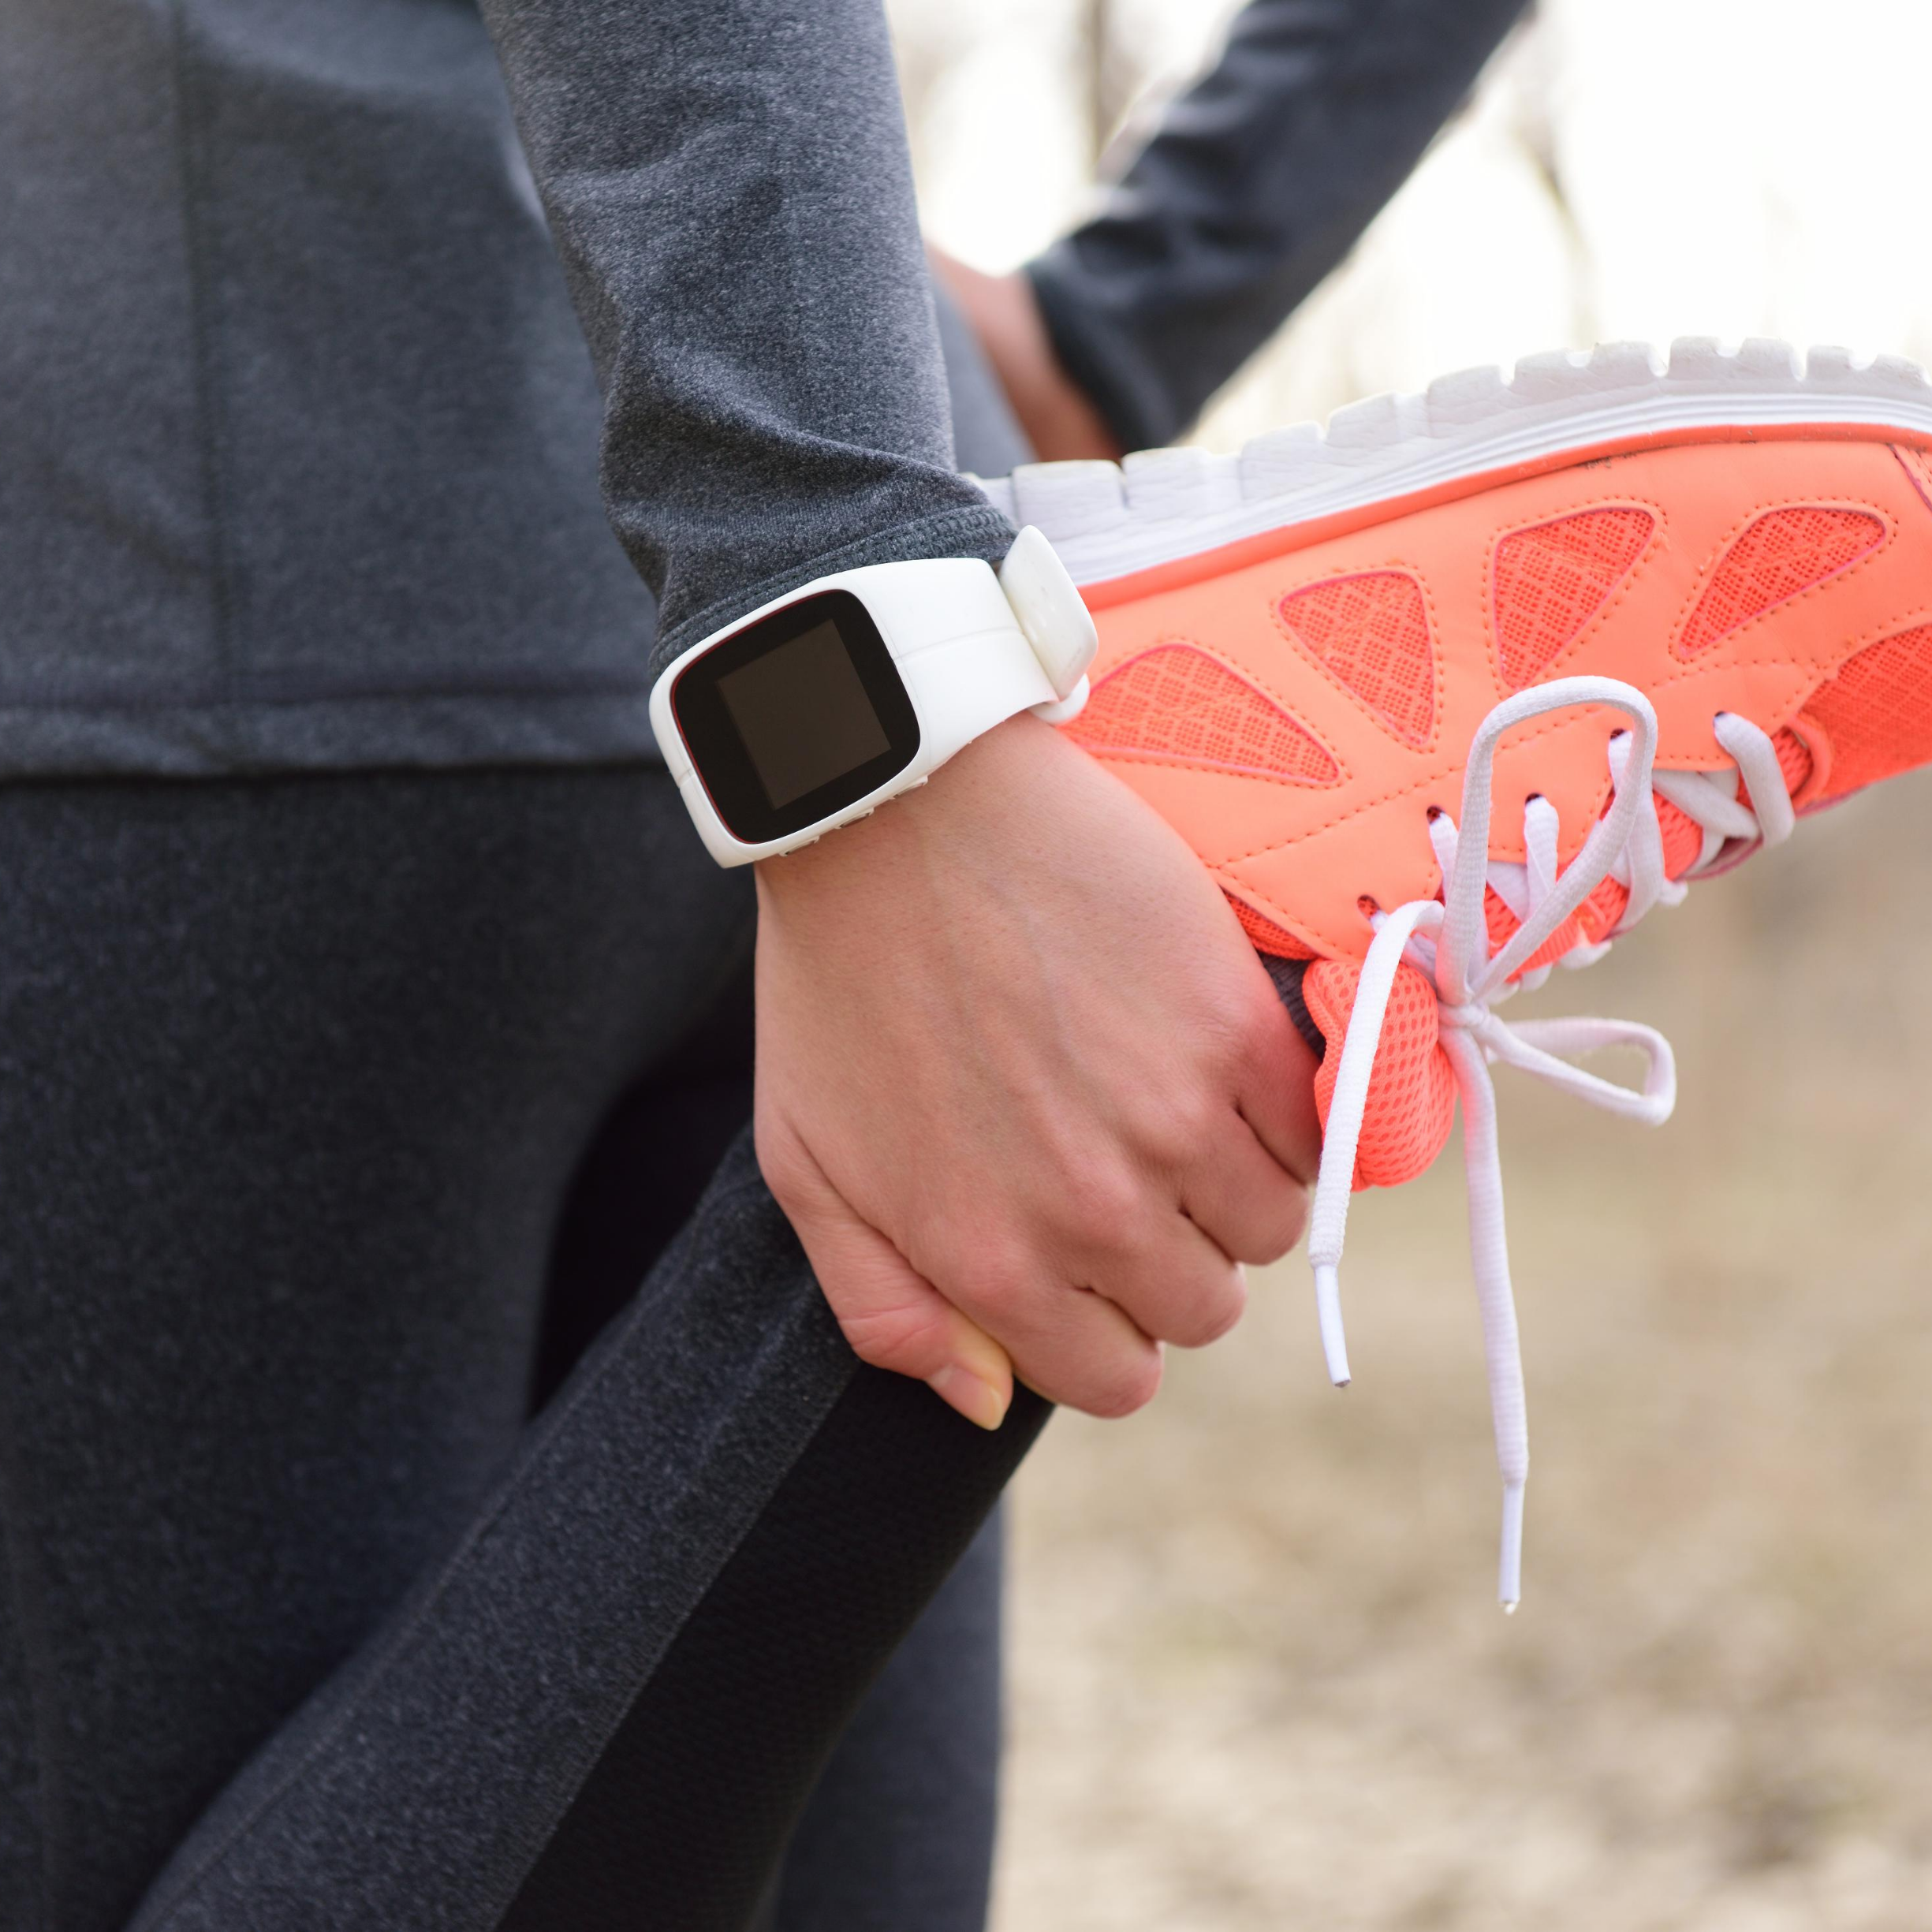 """Individual Stretching front of leg with grey long sleeve top, black leggings, white watch and coral sneakers, represents """"Feeling Sluggish, 30 Min Class to Jumpstart Your System"""" program"""